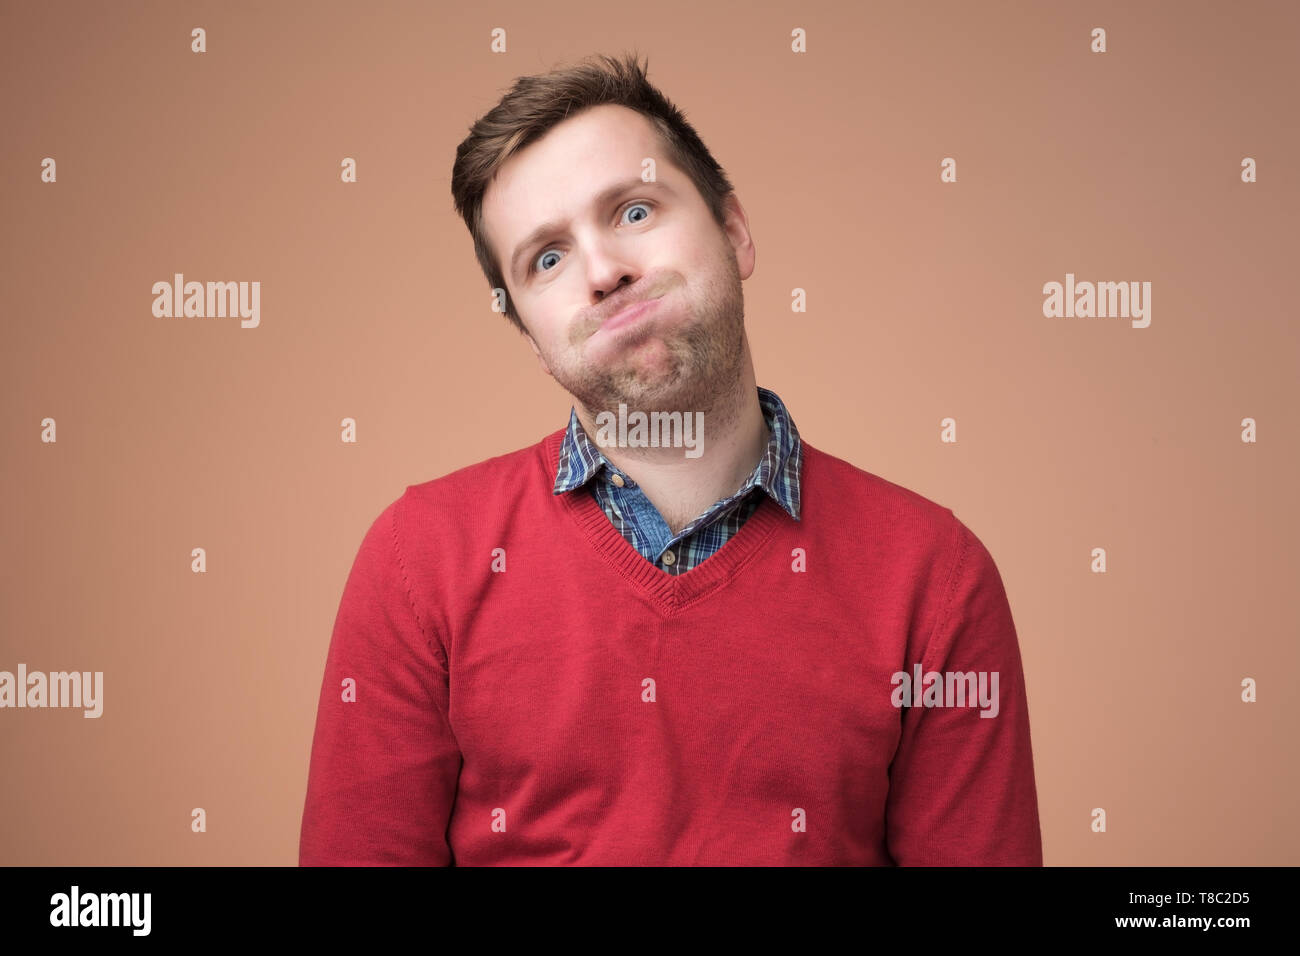 man in red sweater puffing his cheeks, feeling fed up as heis tired. - Stock Image